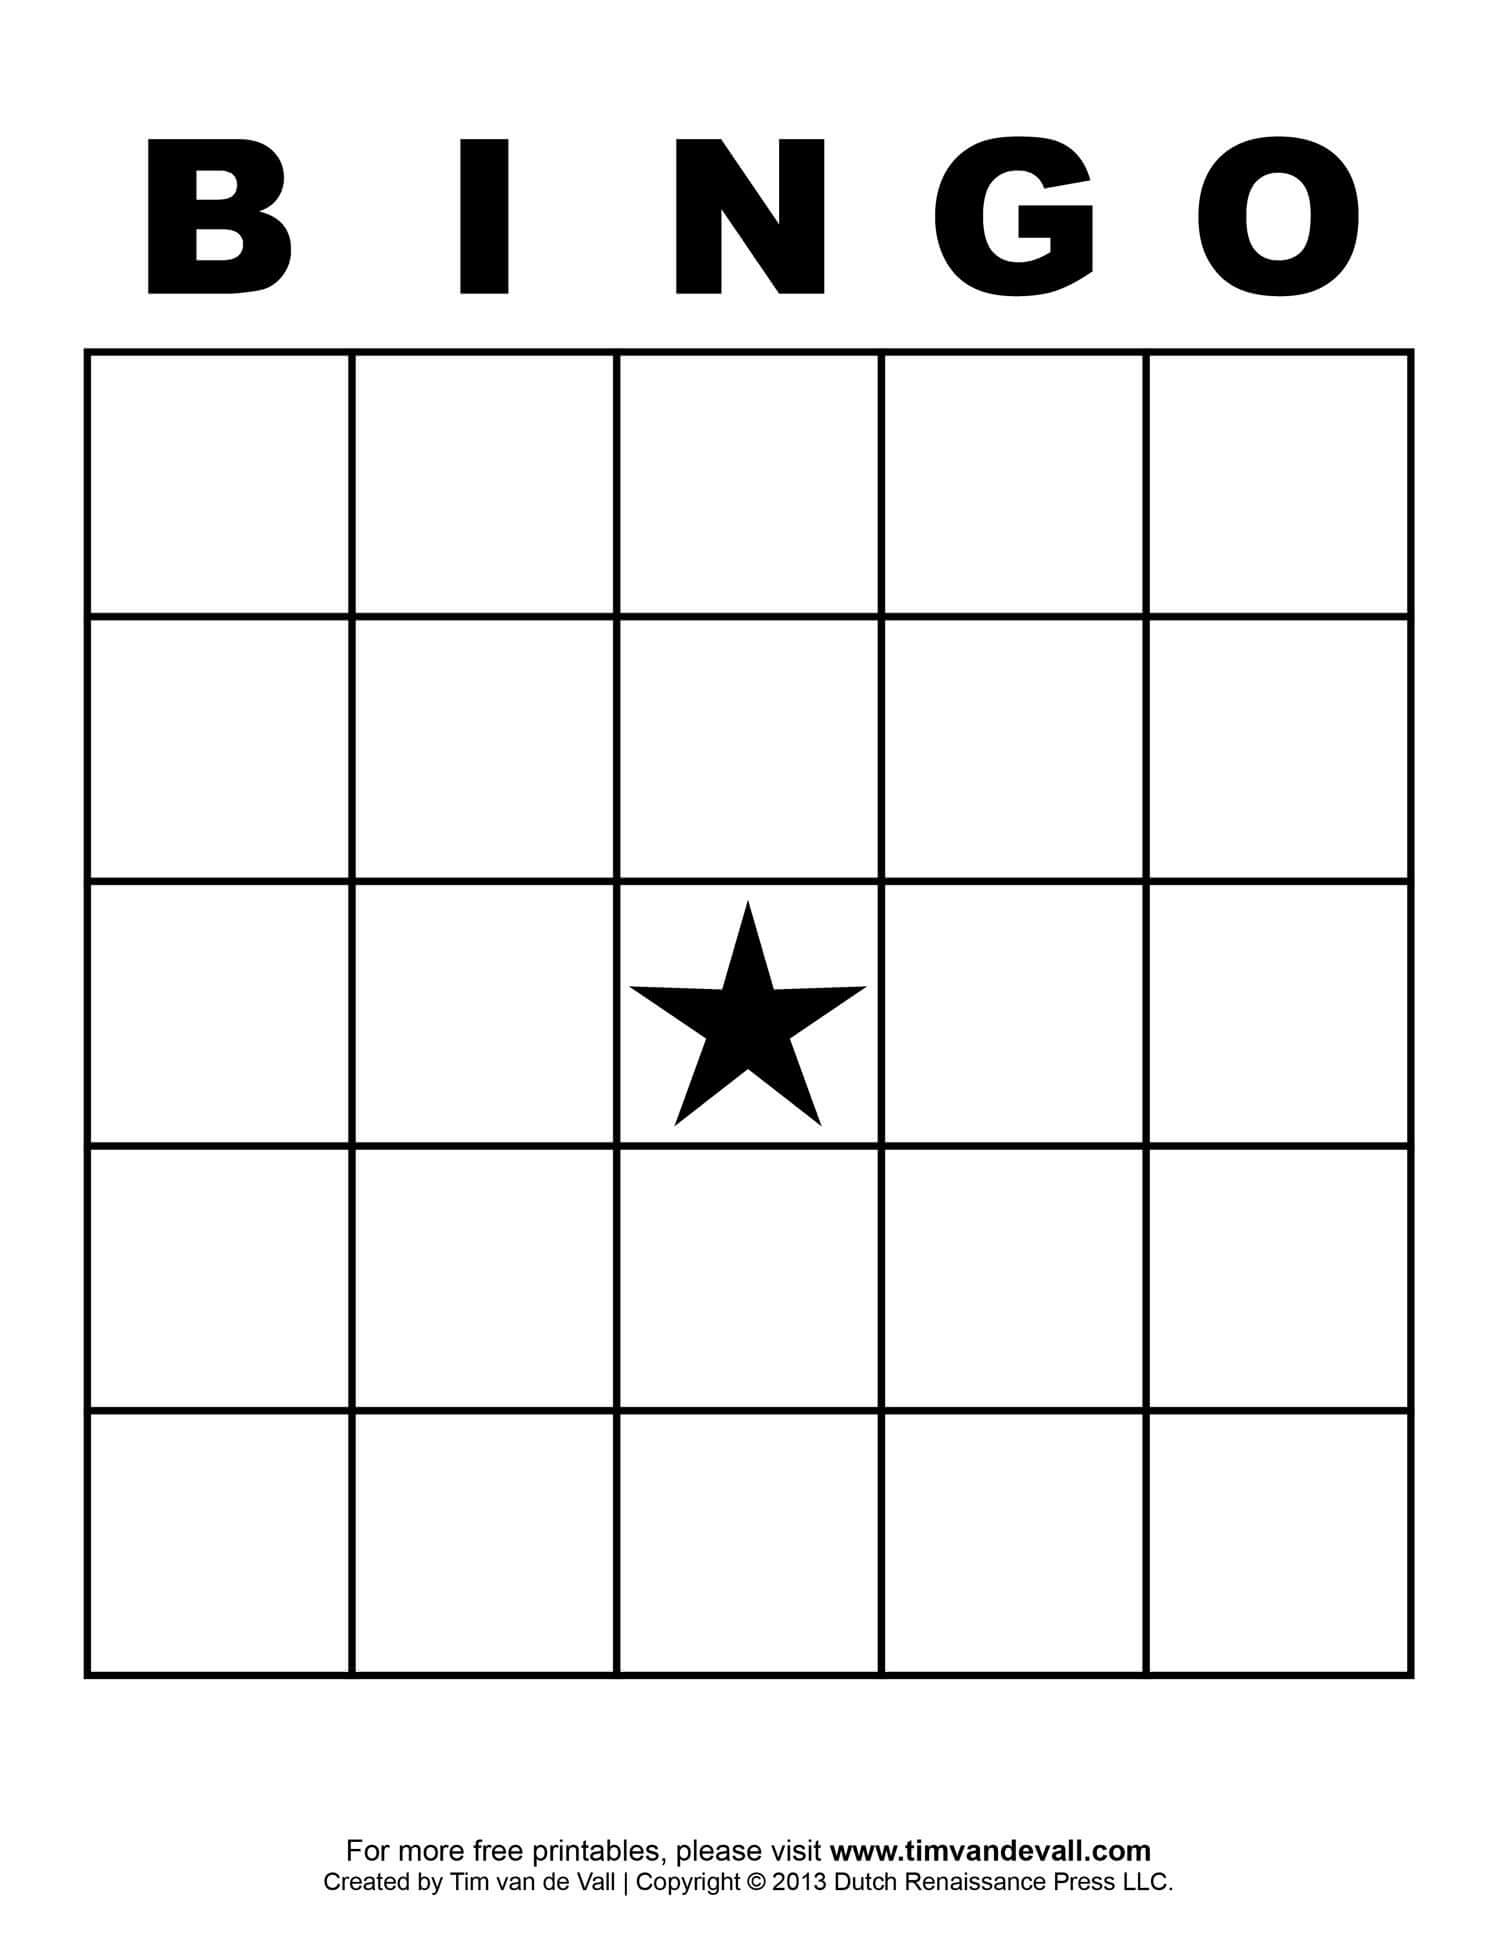 Free Printable Blank Bingo Cards Template 4 X 4 | Bingo Card With Blank Bingo Card Template Microsoft Word